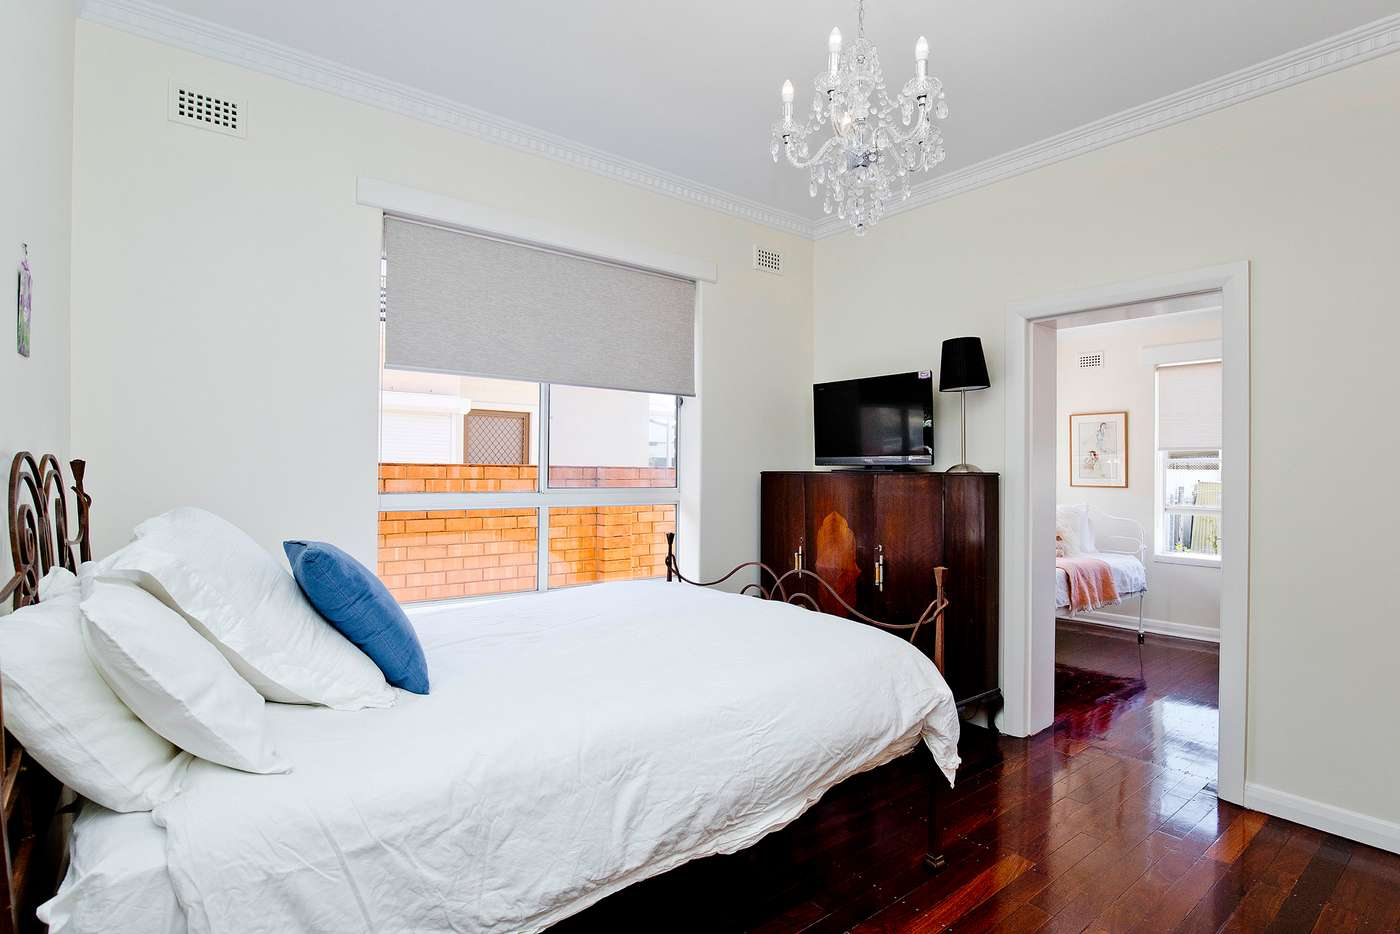 Fifth view of Homely house listing, 14 West Beach Road, West Beach SA 5024